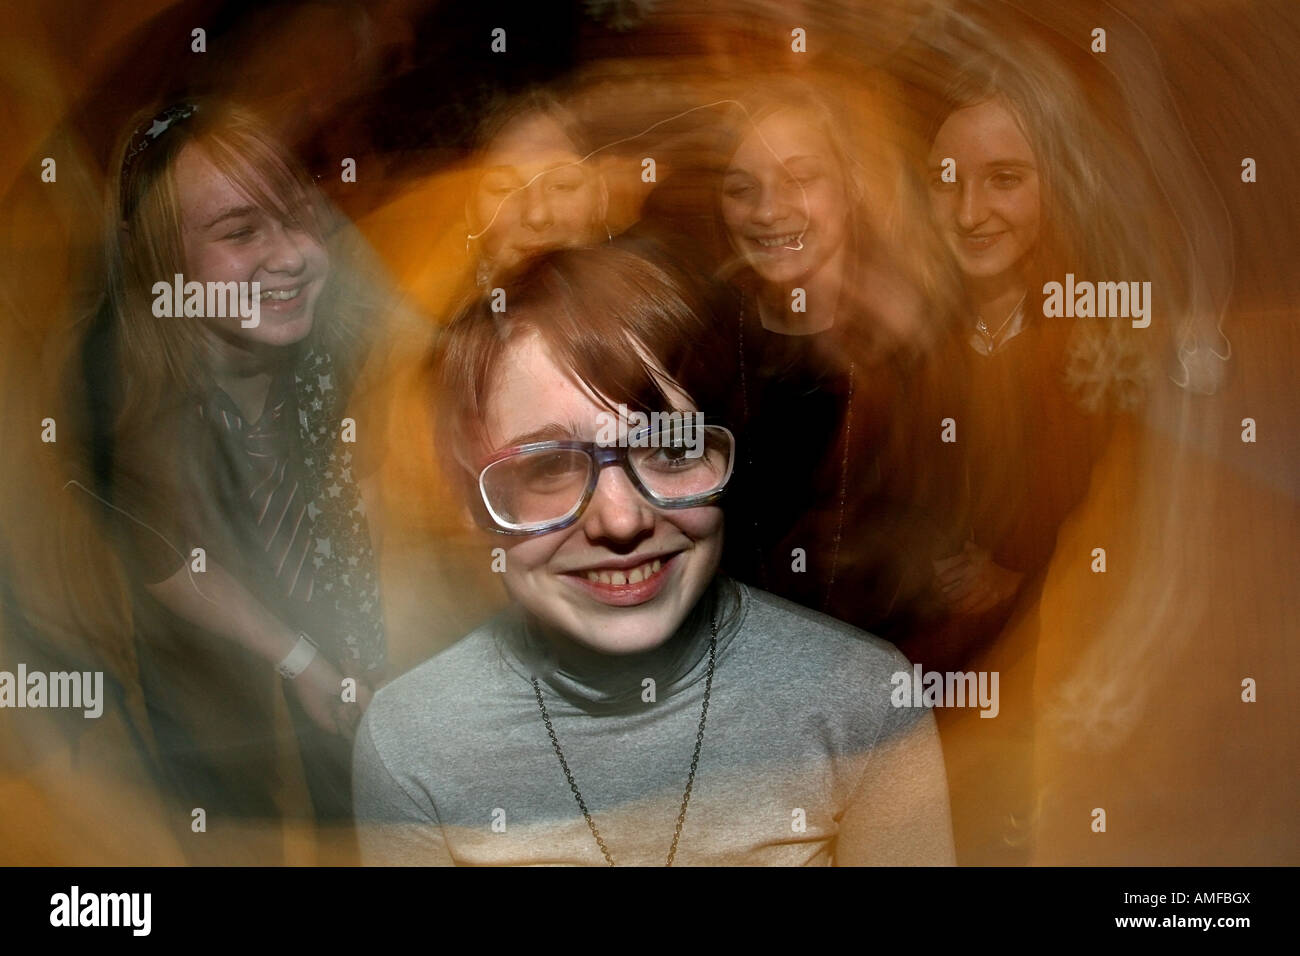 Girls try out beer goggles which give the wearer the experience of being under the effects of alcohol without drinking - Stock Image